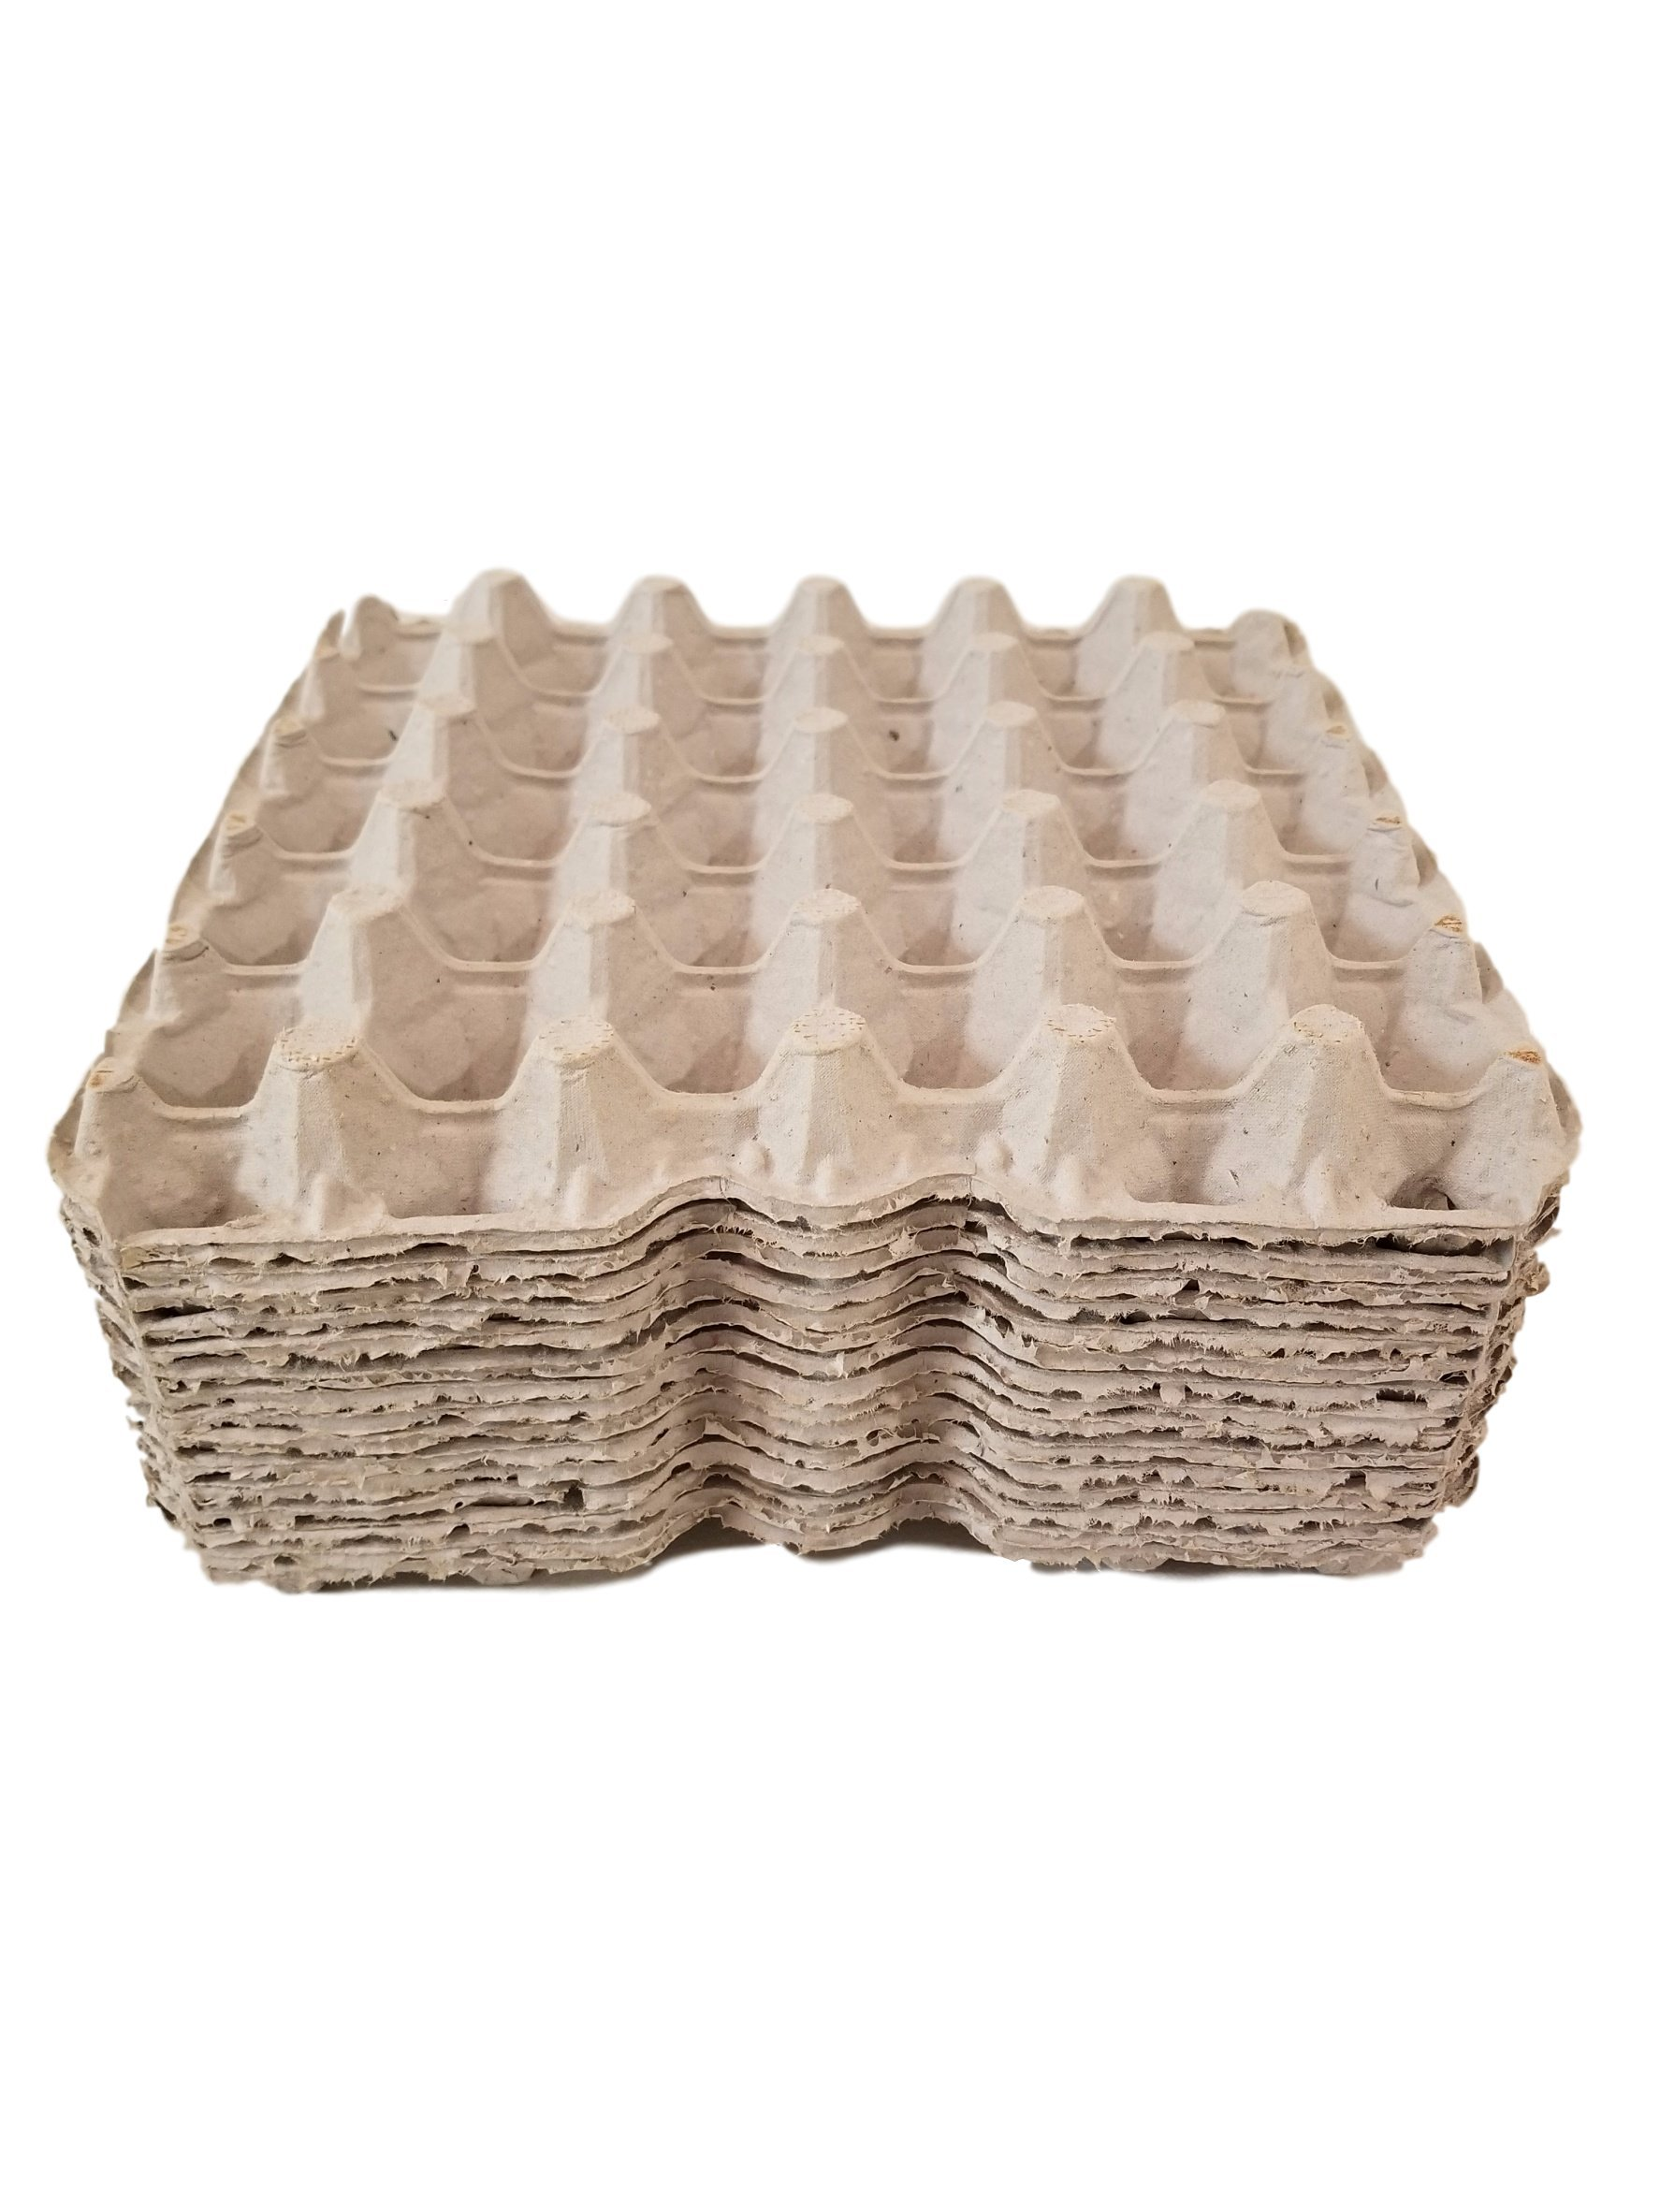 Biodegradable Pulp Fiber Egg Flats by MT Products - (15 Pieces)